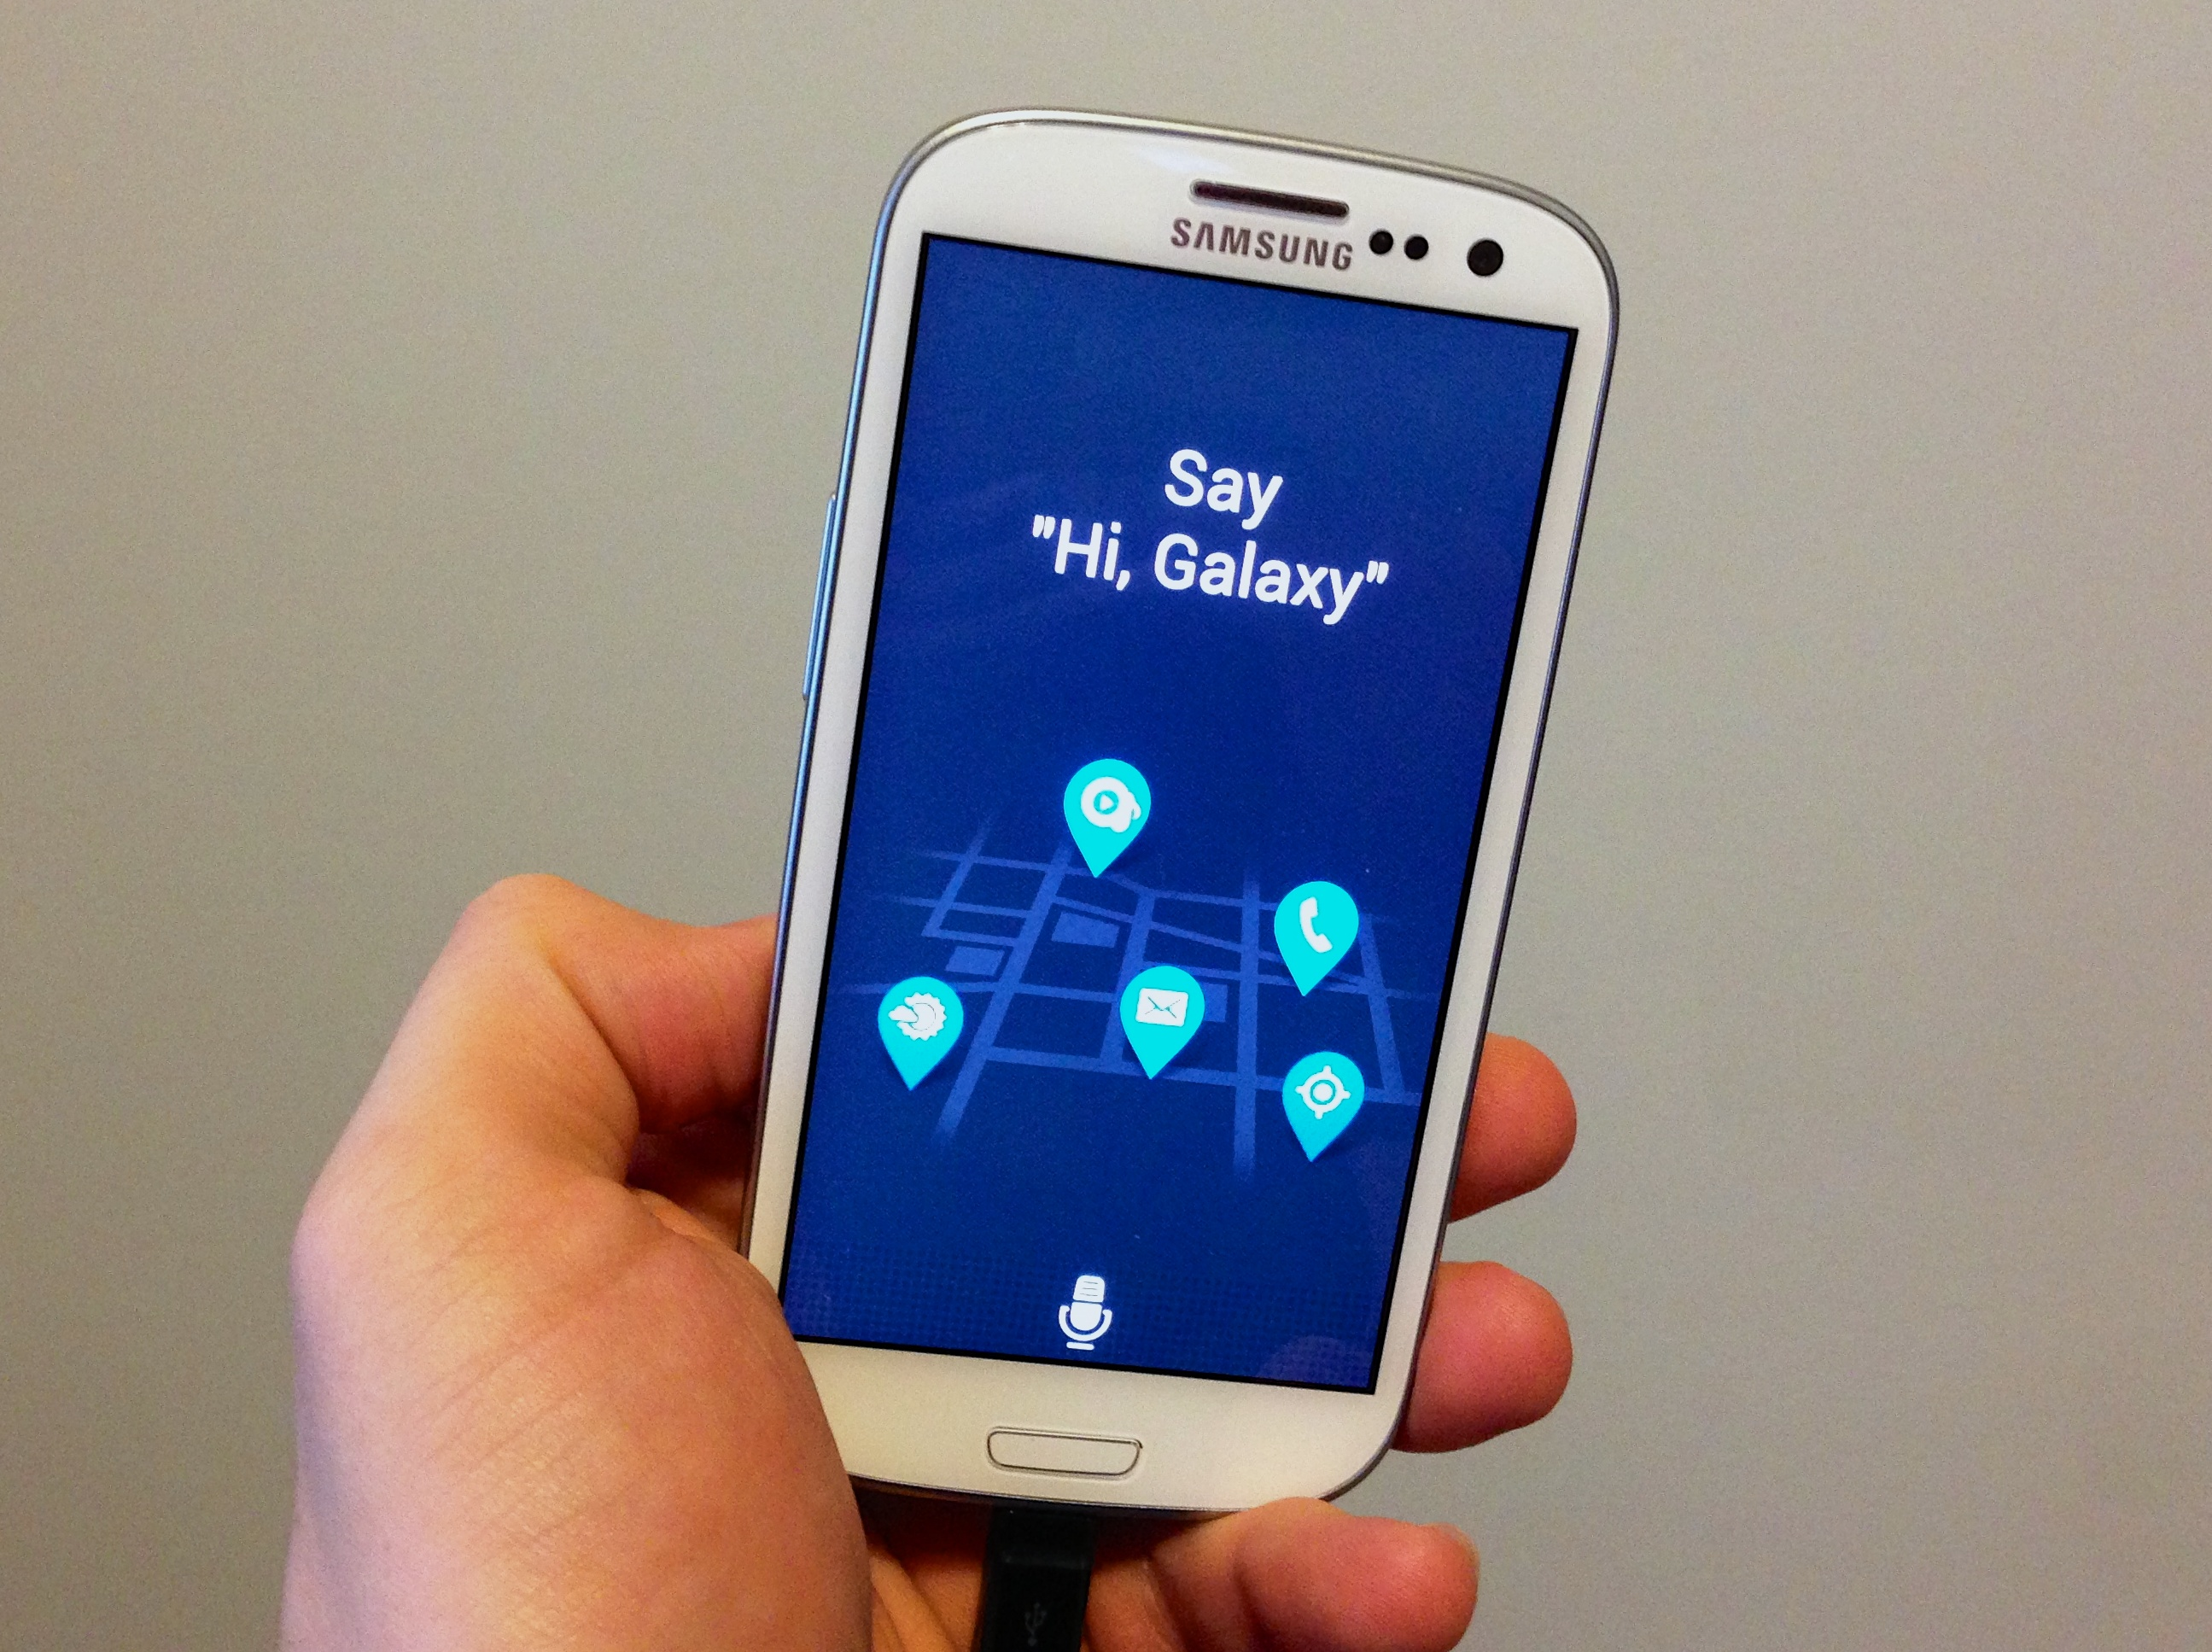 Galaxy Note 2, Galaxy S3 Will Likely Skip Android 4 2 for Android 4 3